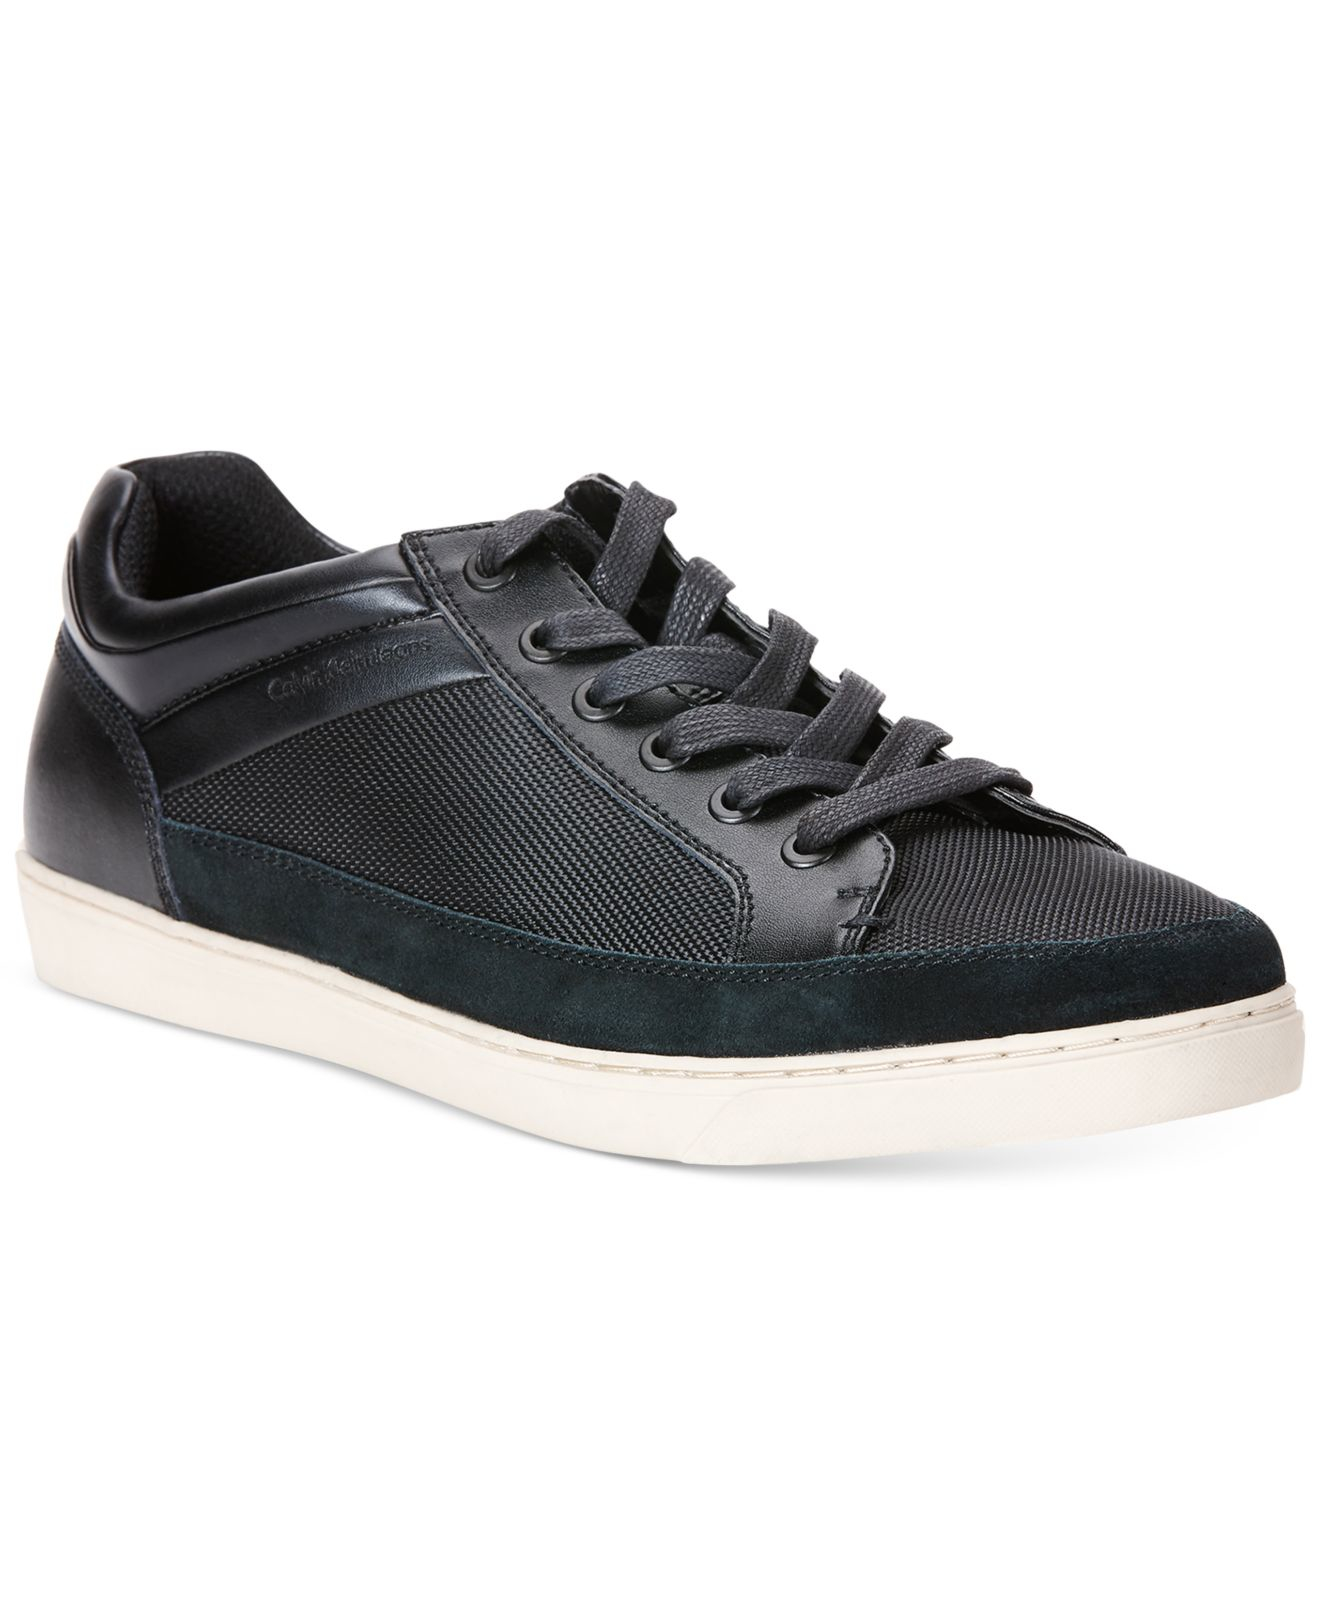 calvin klein jeans zal sneakers in black for men save 26. Black Bedroom Furniture Sets. Home Design Ideas